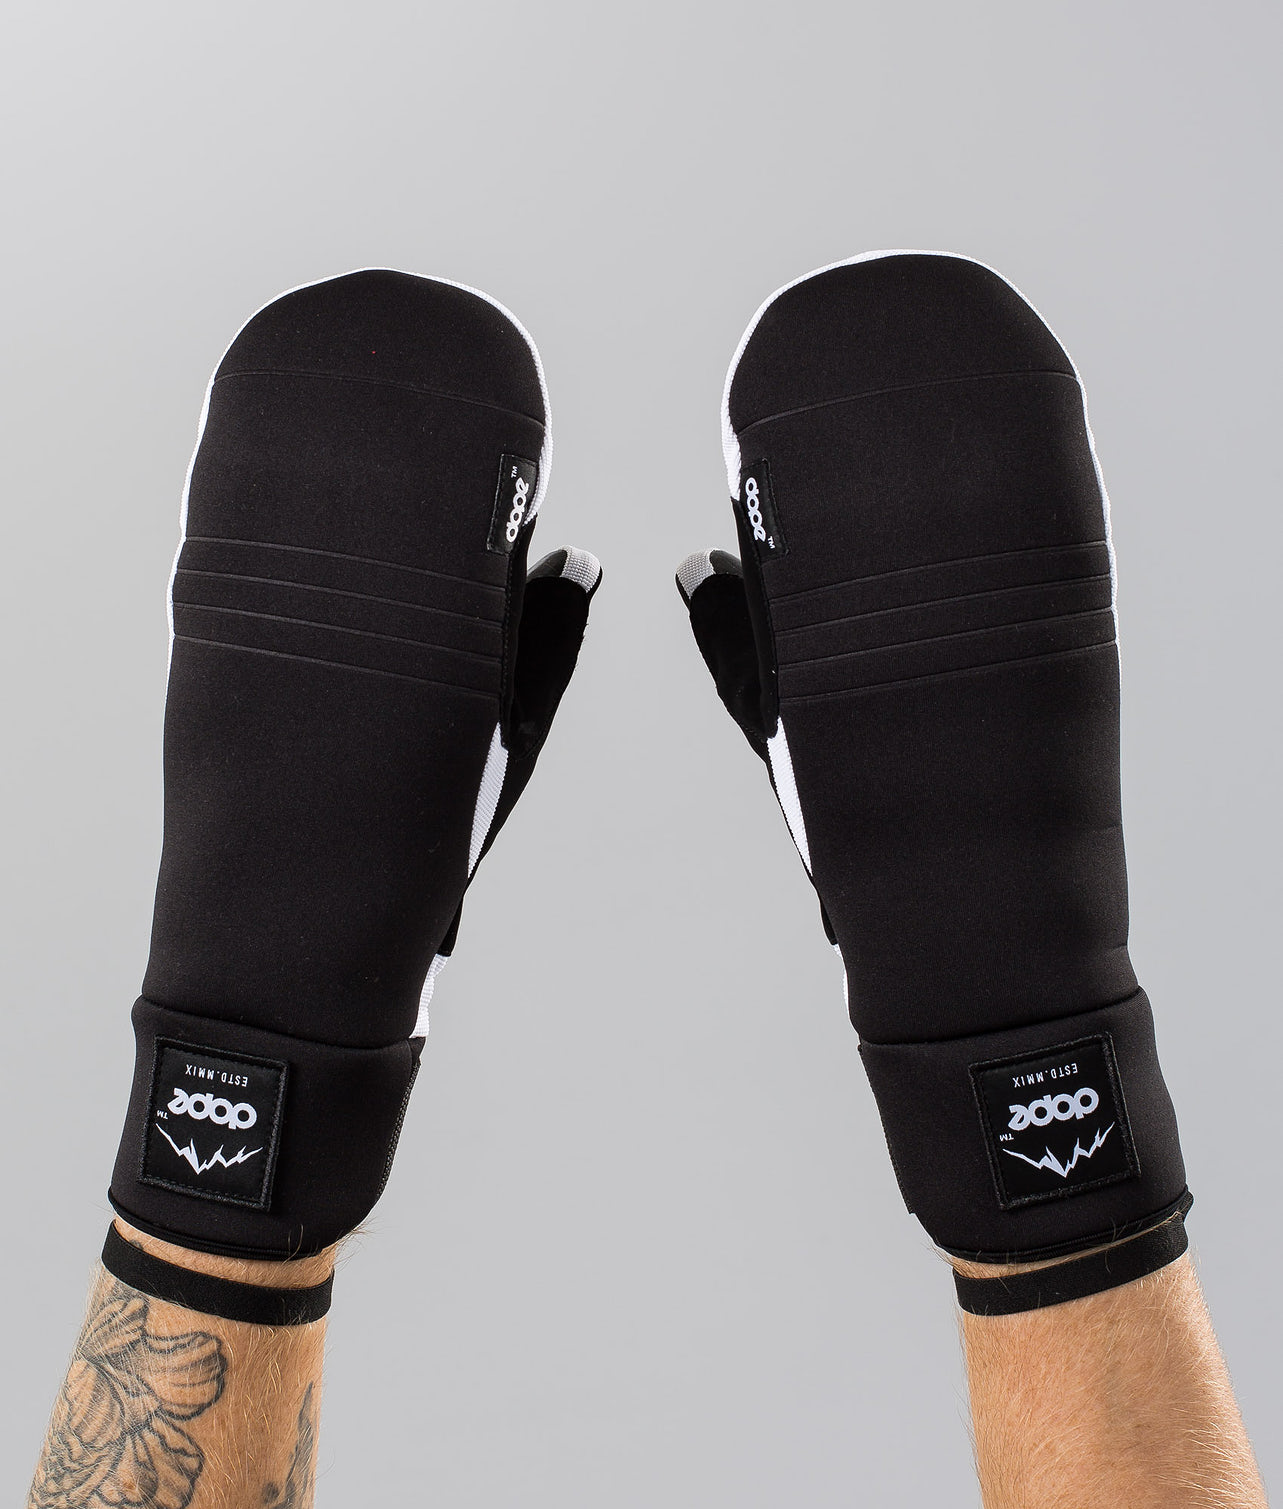 Buy Signet Mitt Ski Gloves from Dope at Ridestore.com - Always free shipping, free returns and 30 days money back guarantee